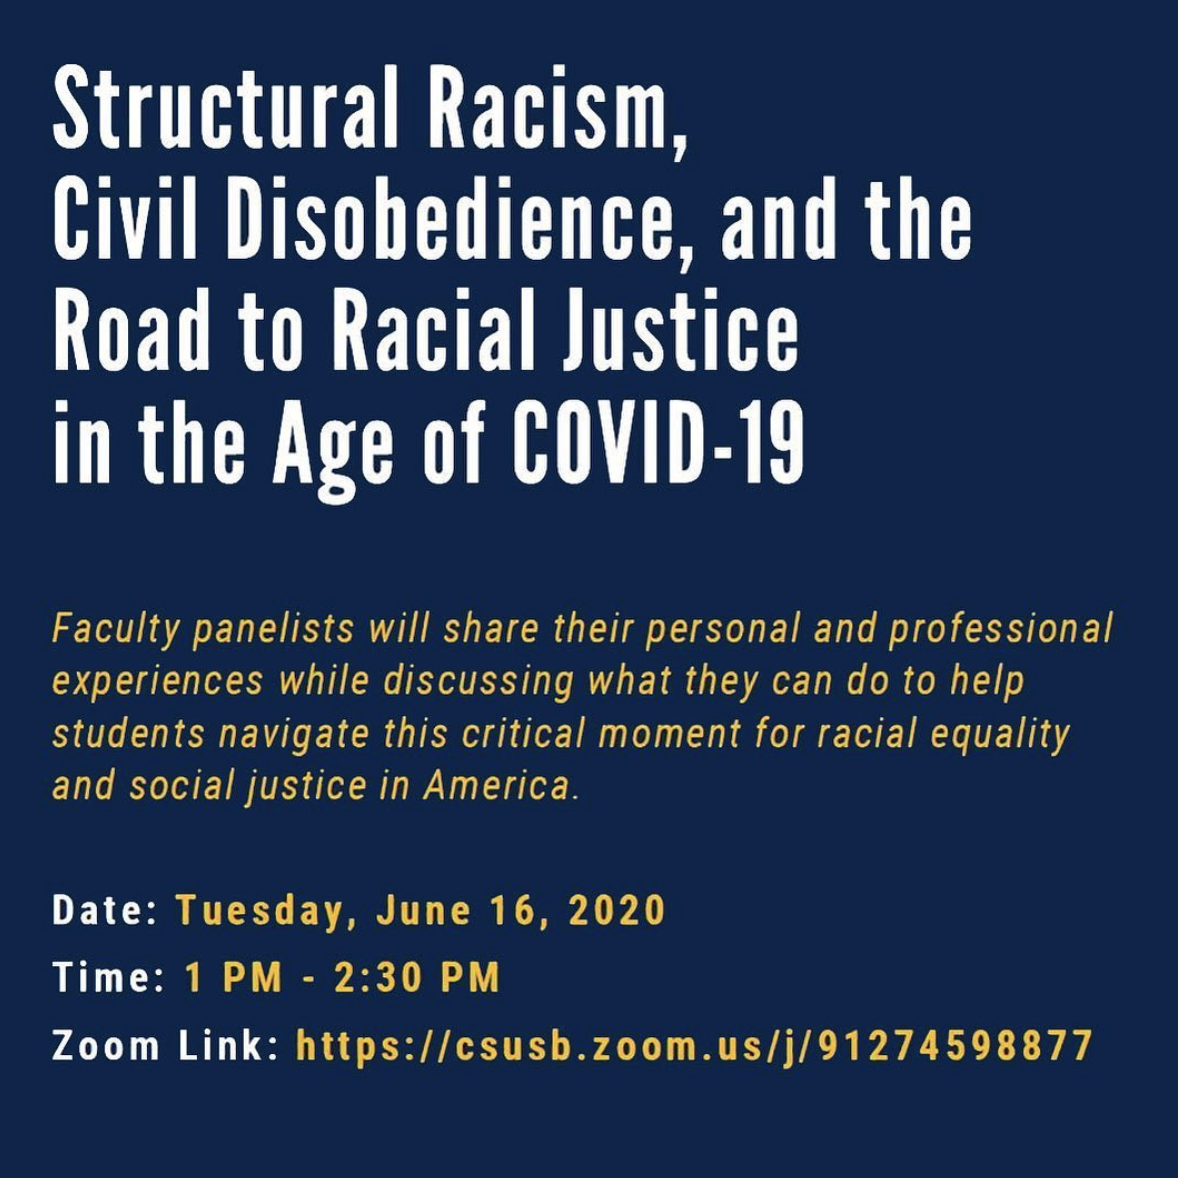 Structural Racism and Civil Disobedience